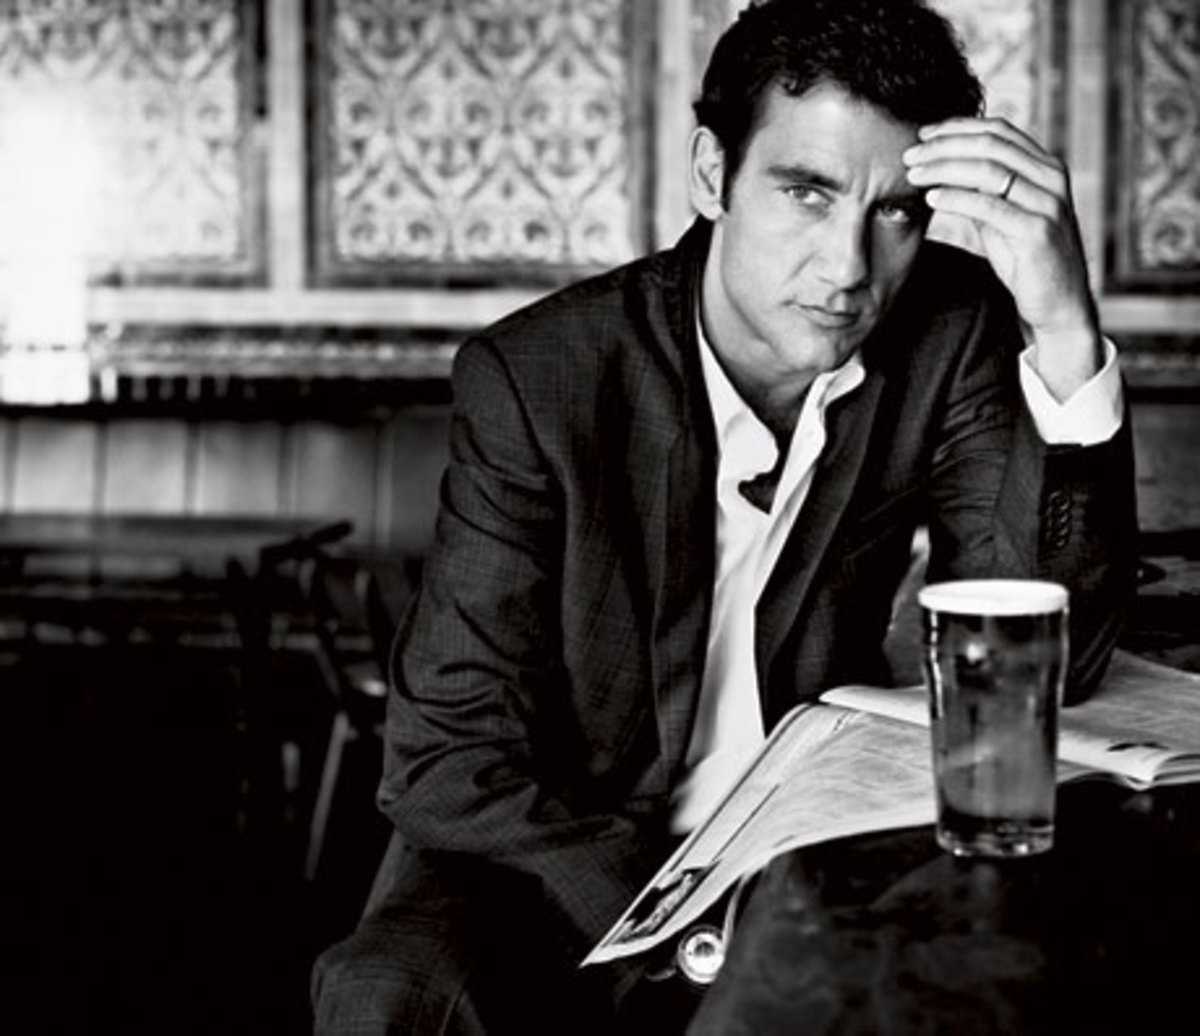 Clive Owen, True Detective Season 2